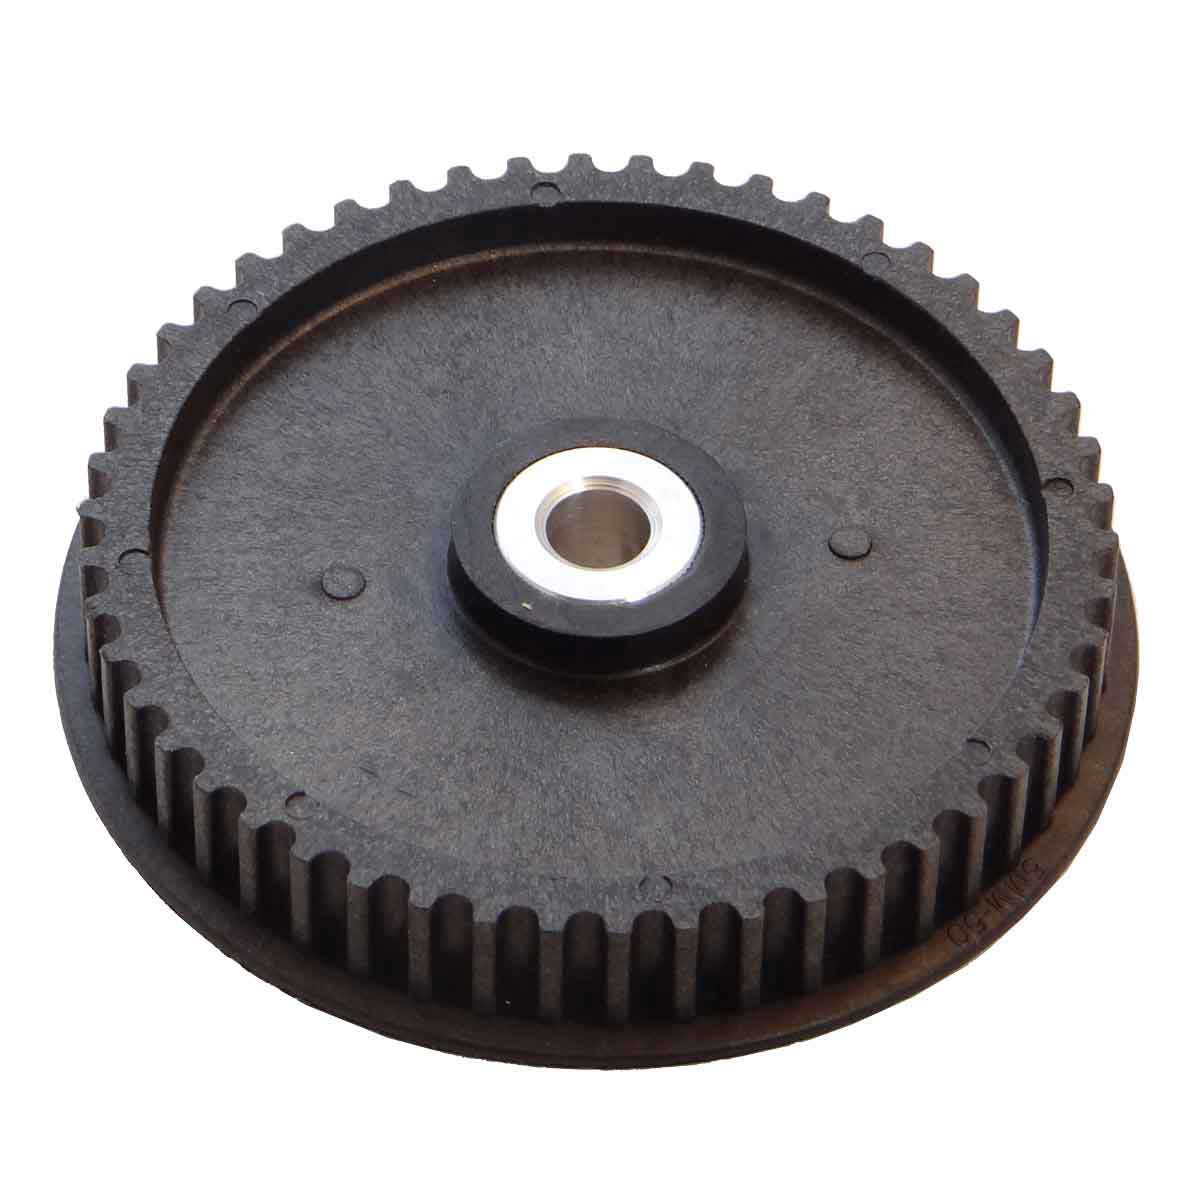 Drive Pulley for Gemini Revolution XT Tile Saw